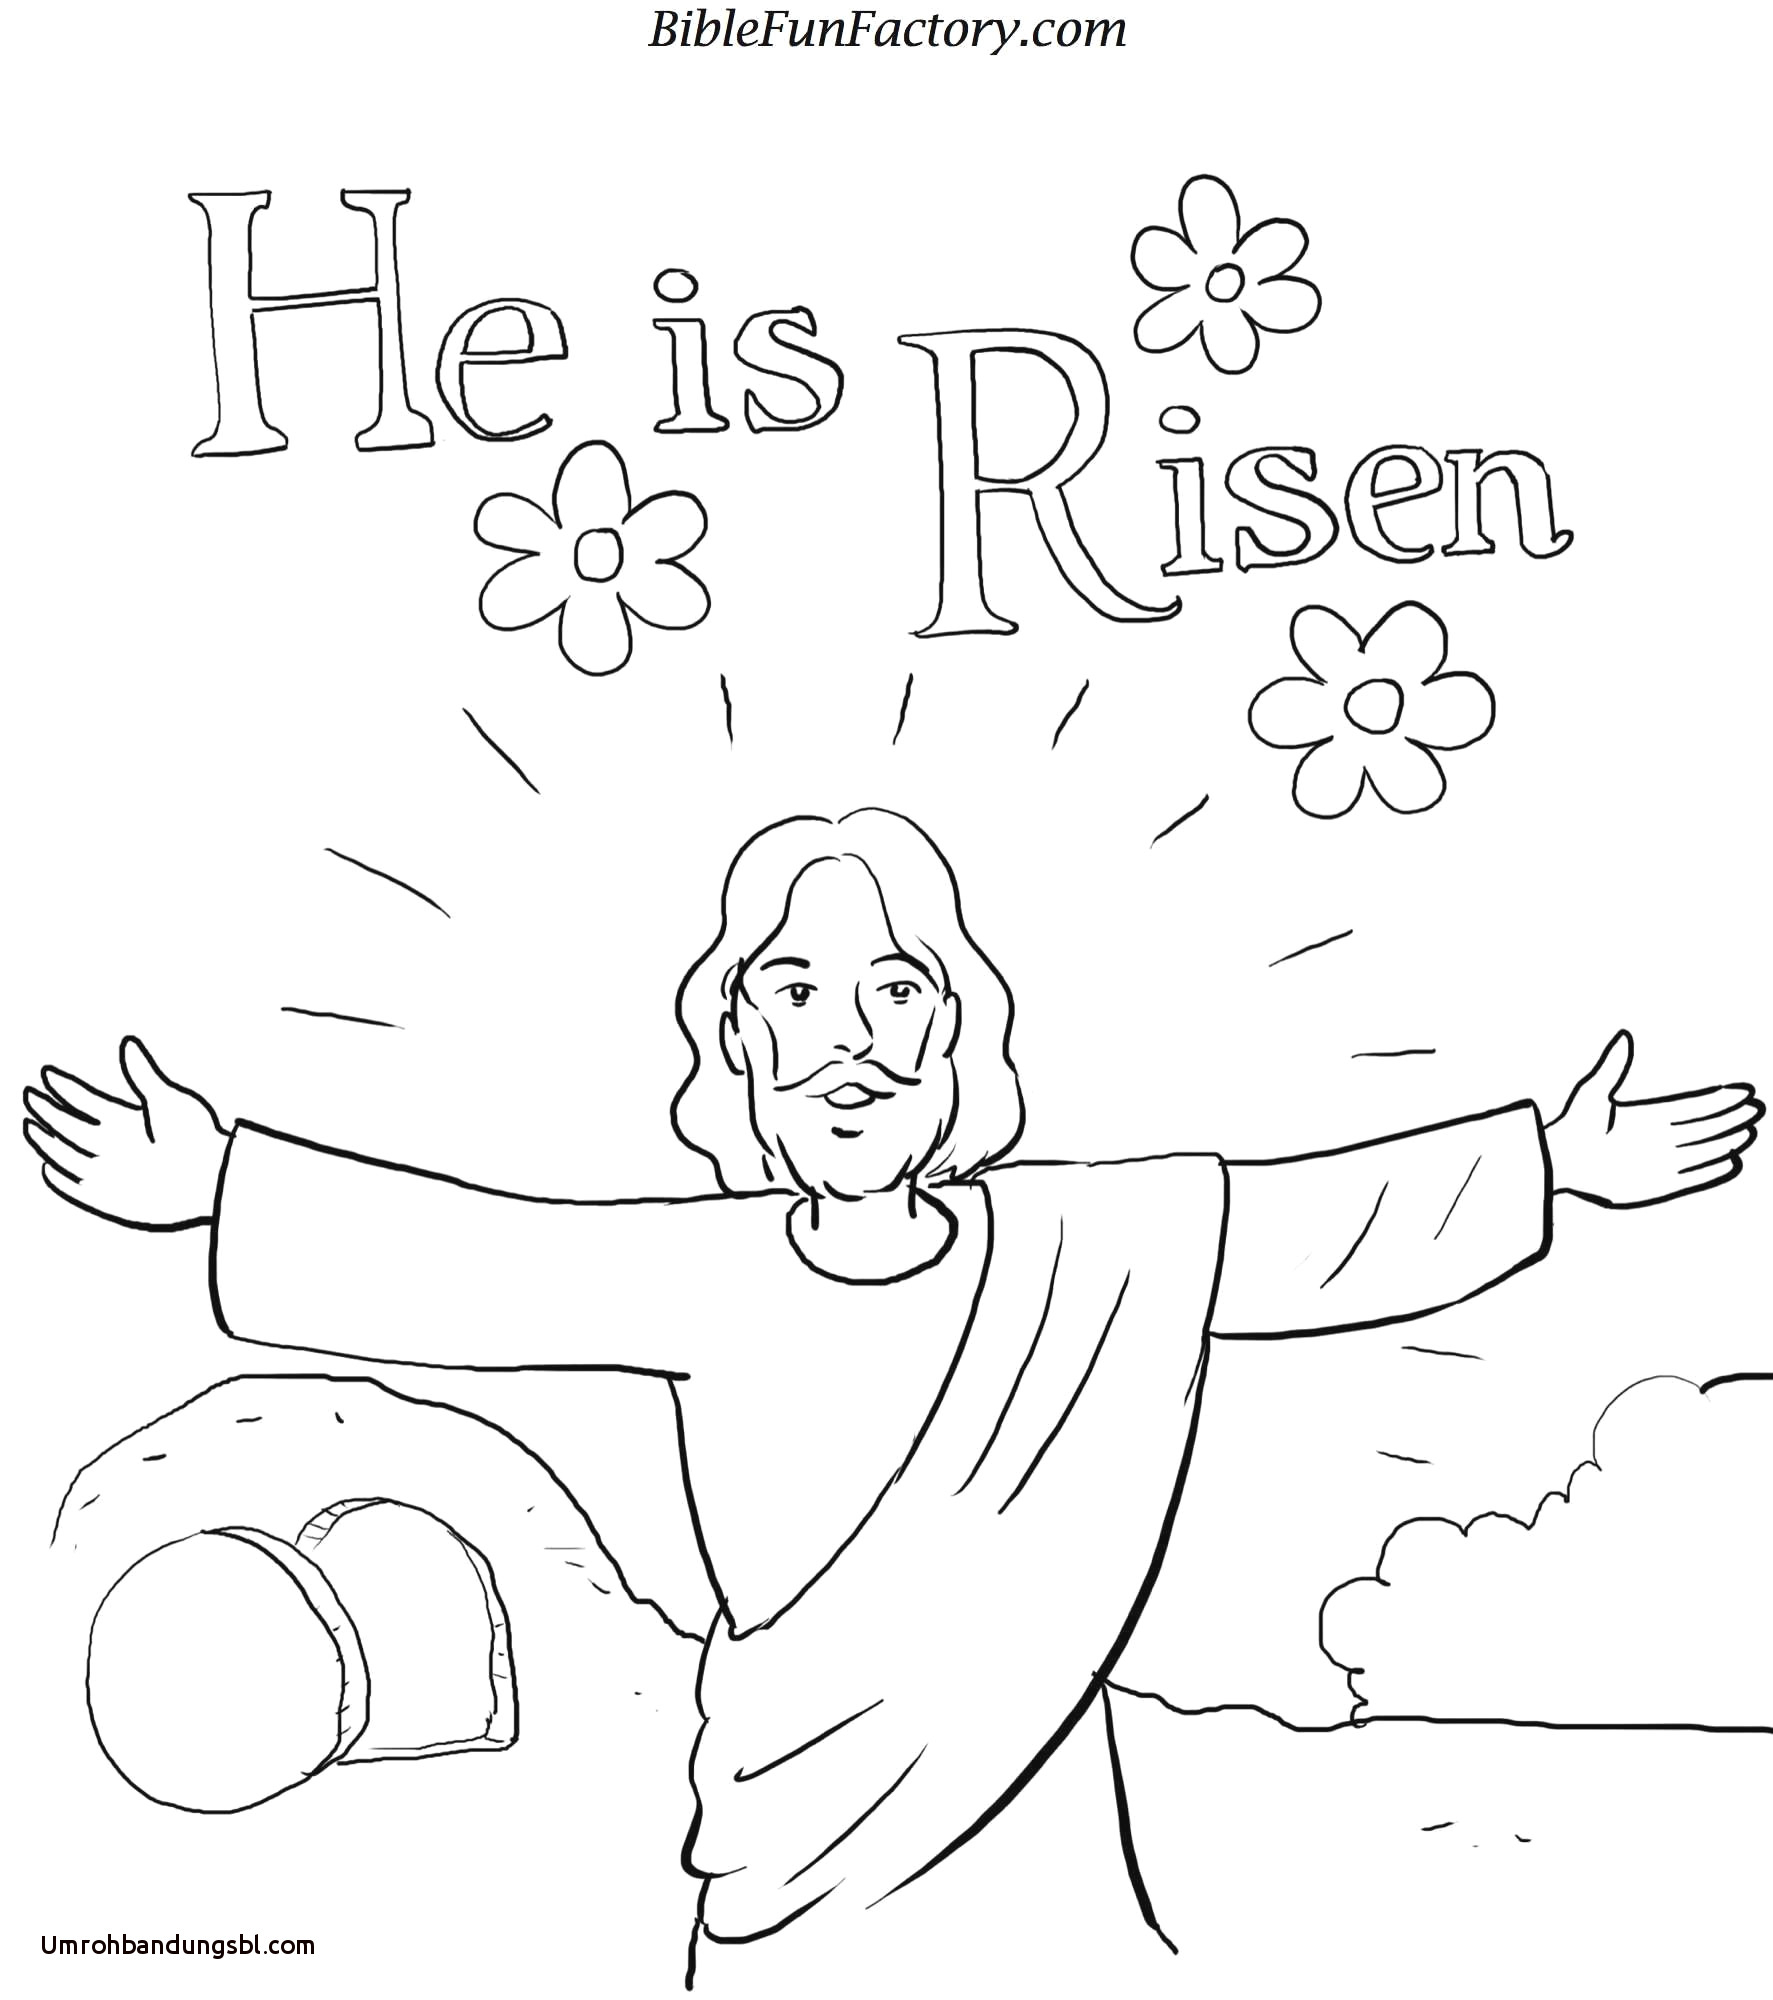 Jesus Resurrection Coloring Pages  to Print 5f - Save it to your computer